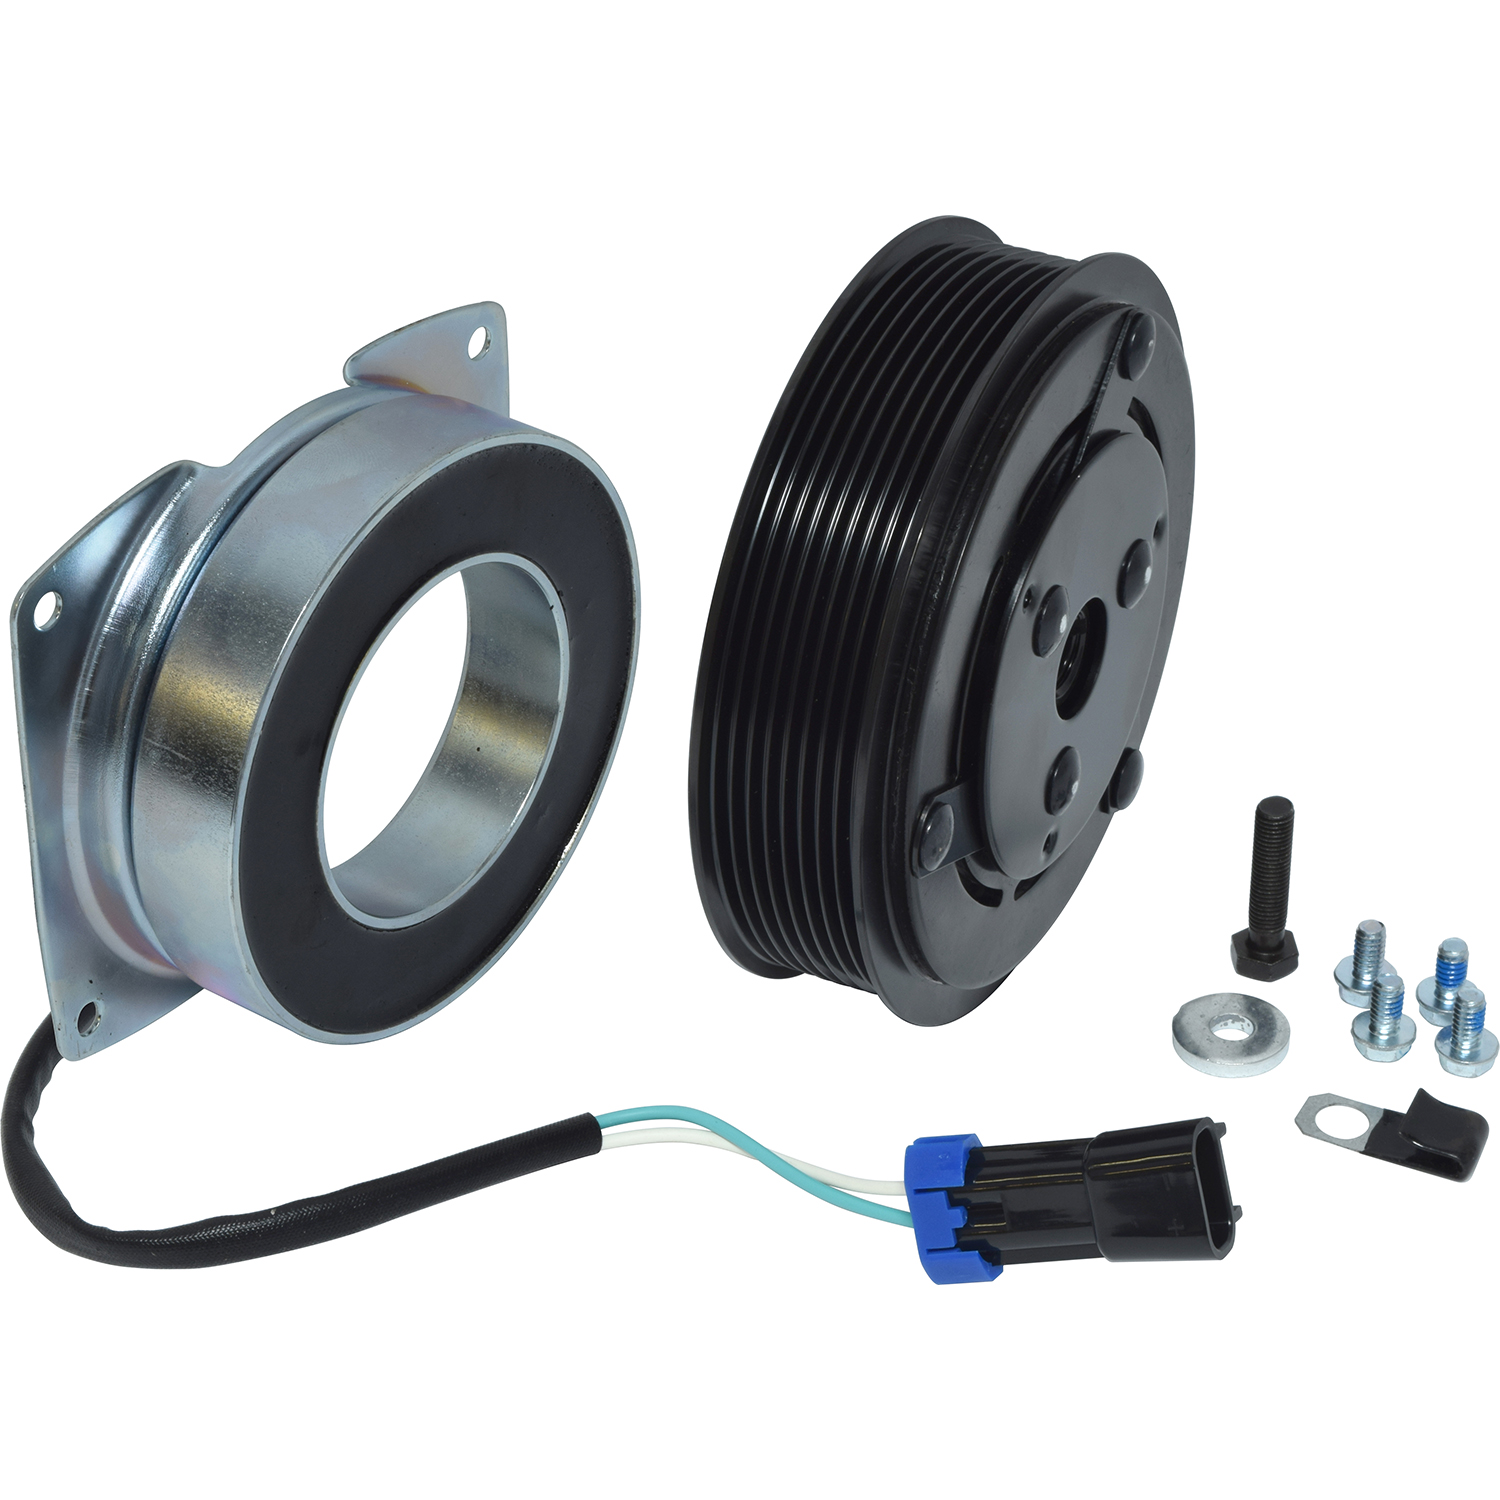 Compressor Clutch YORK PV8 152MM 12V